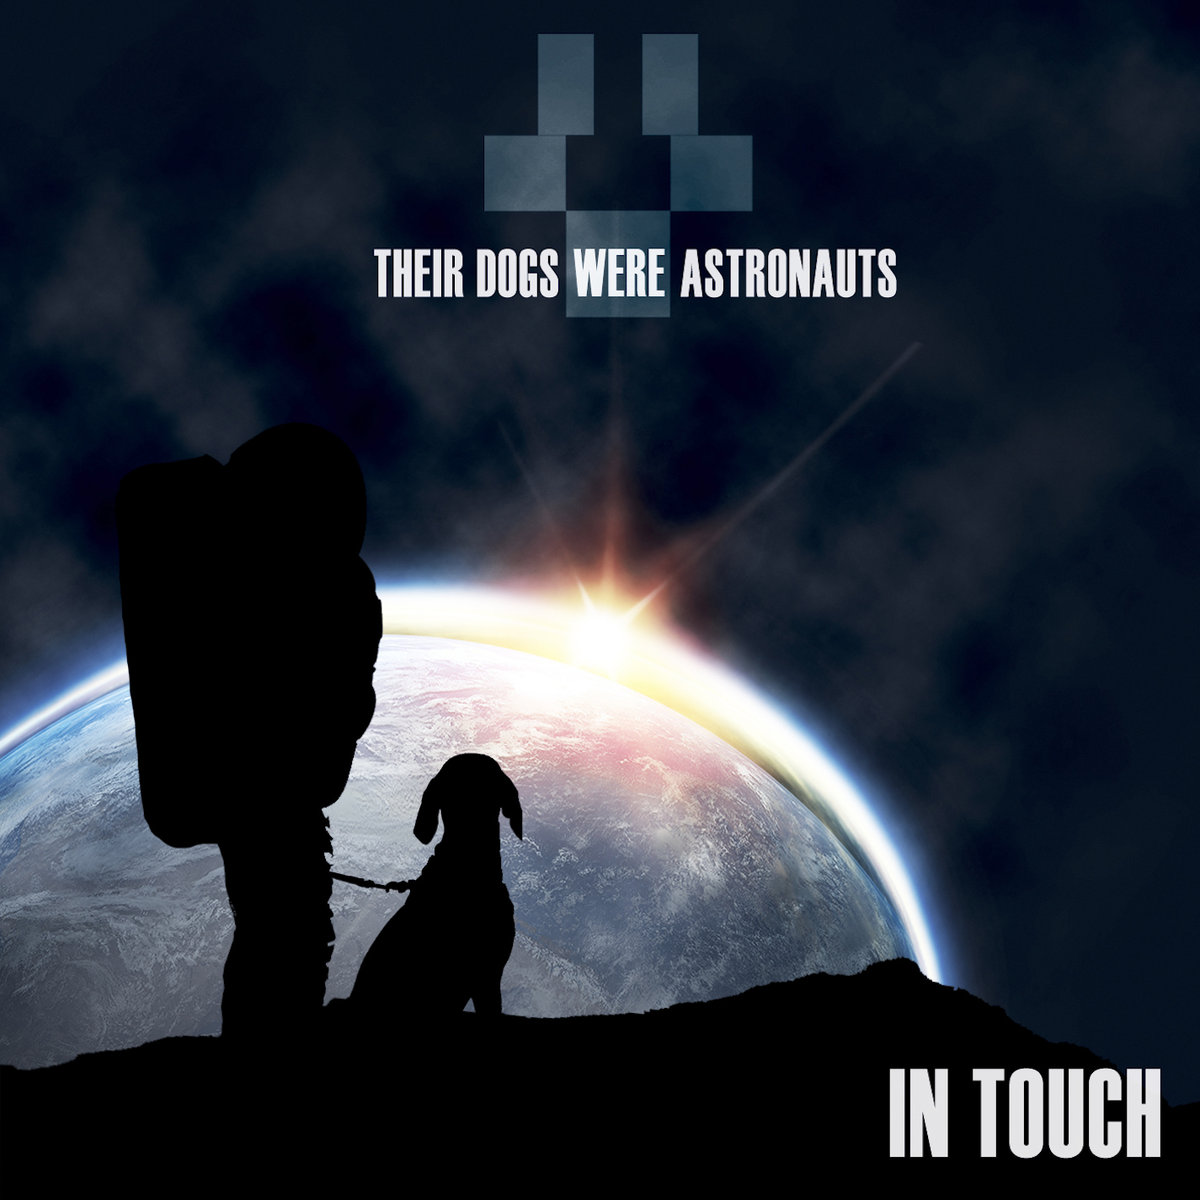 Their Dogs Were Astronauts - Plenary Spheres @ 'In Touch' album (instrumental metal, metal)